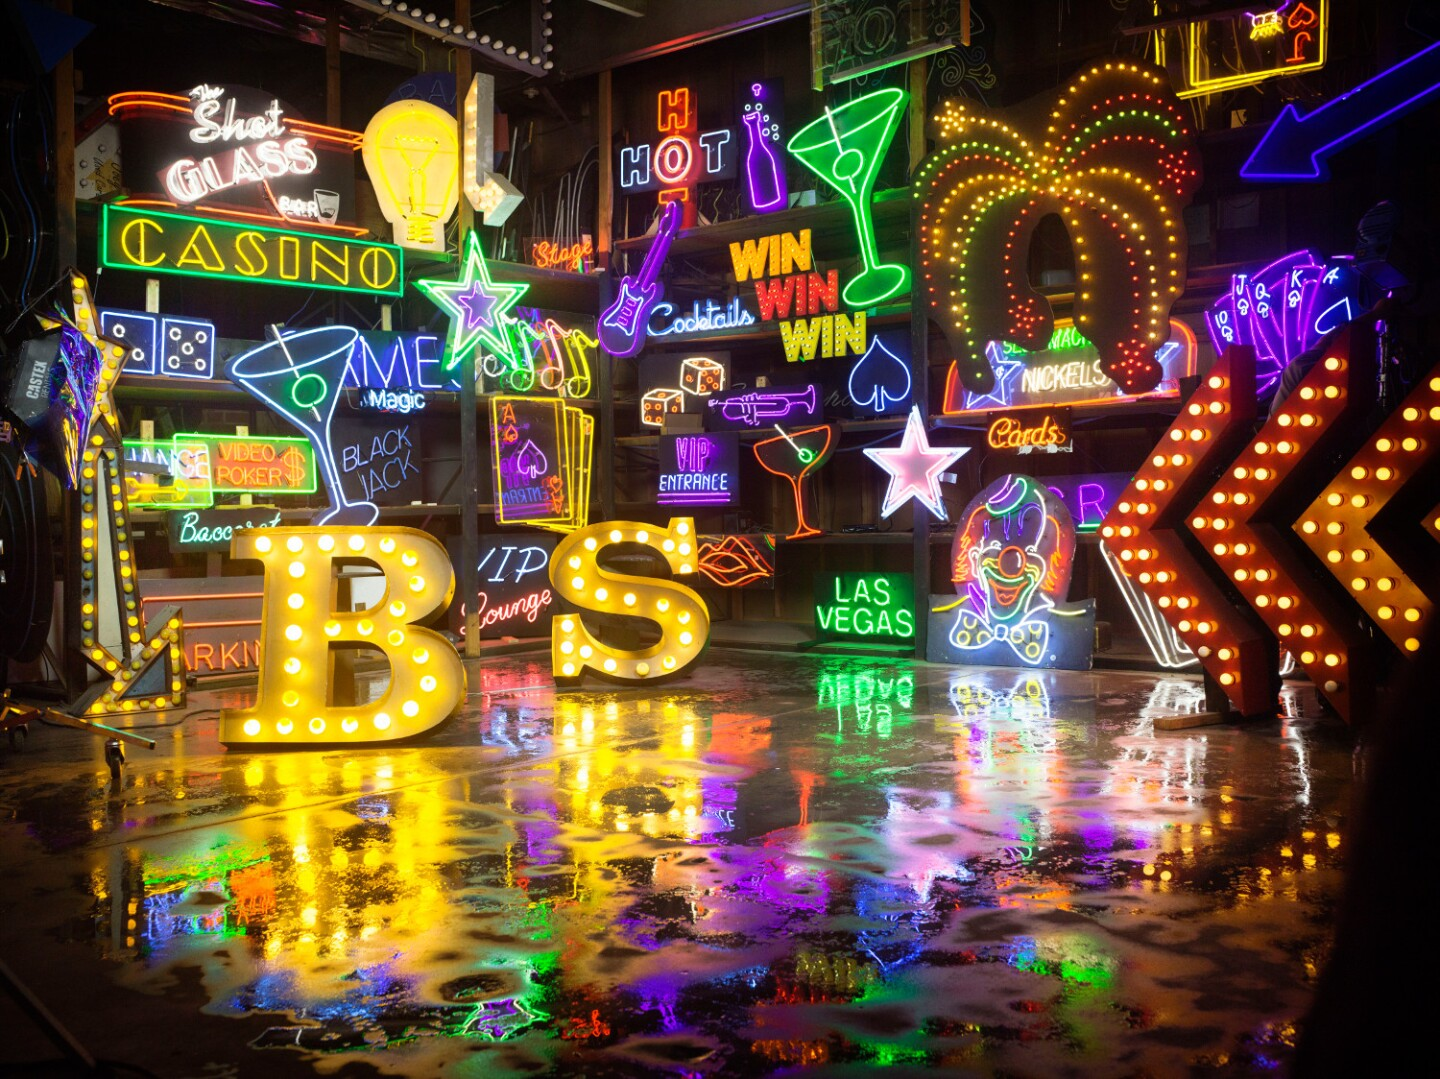 Lisa Schulte's work was used as the backdrop for several Backstreet Boys imageswhich promote their 2017 Las Vegas residency.   Photo: Courtesy of the artist